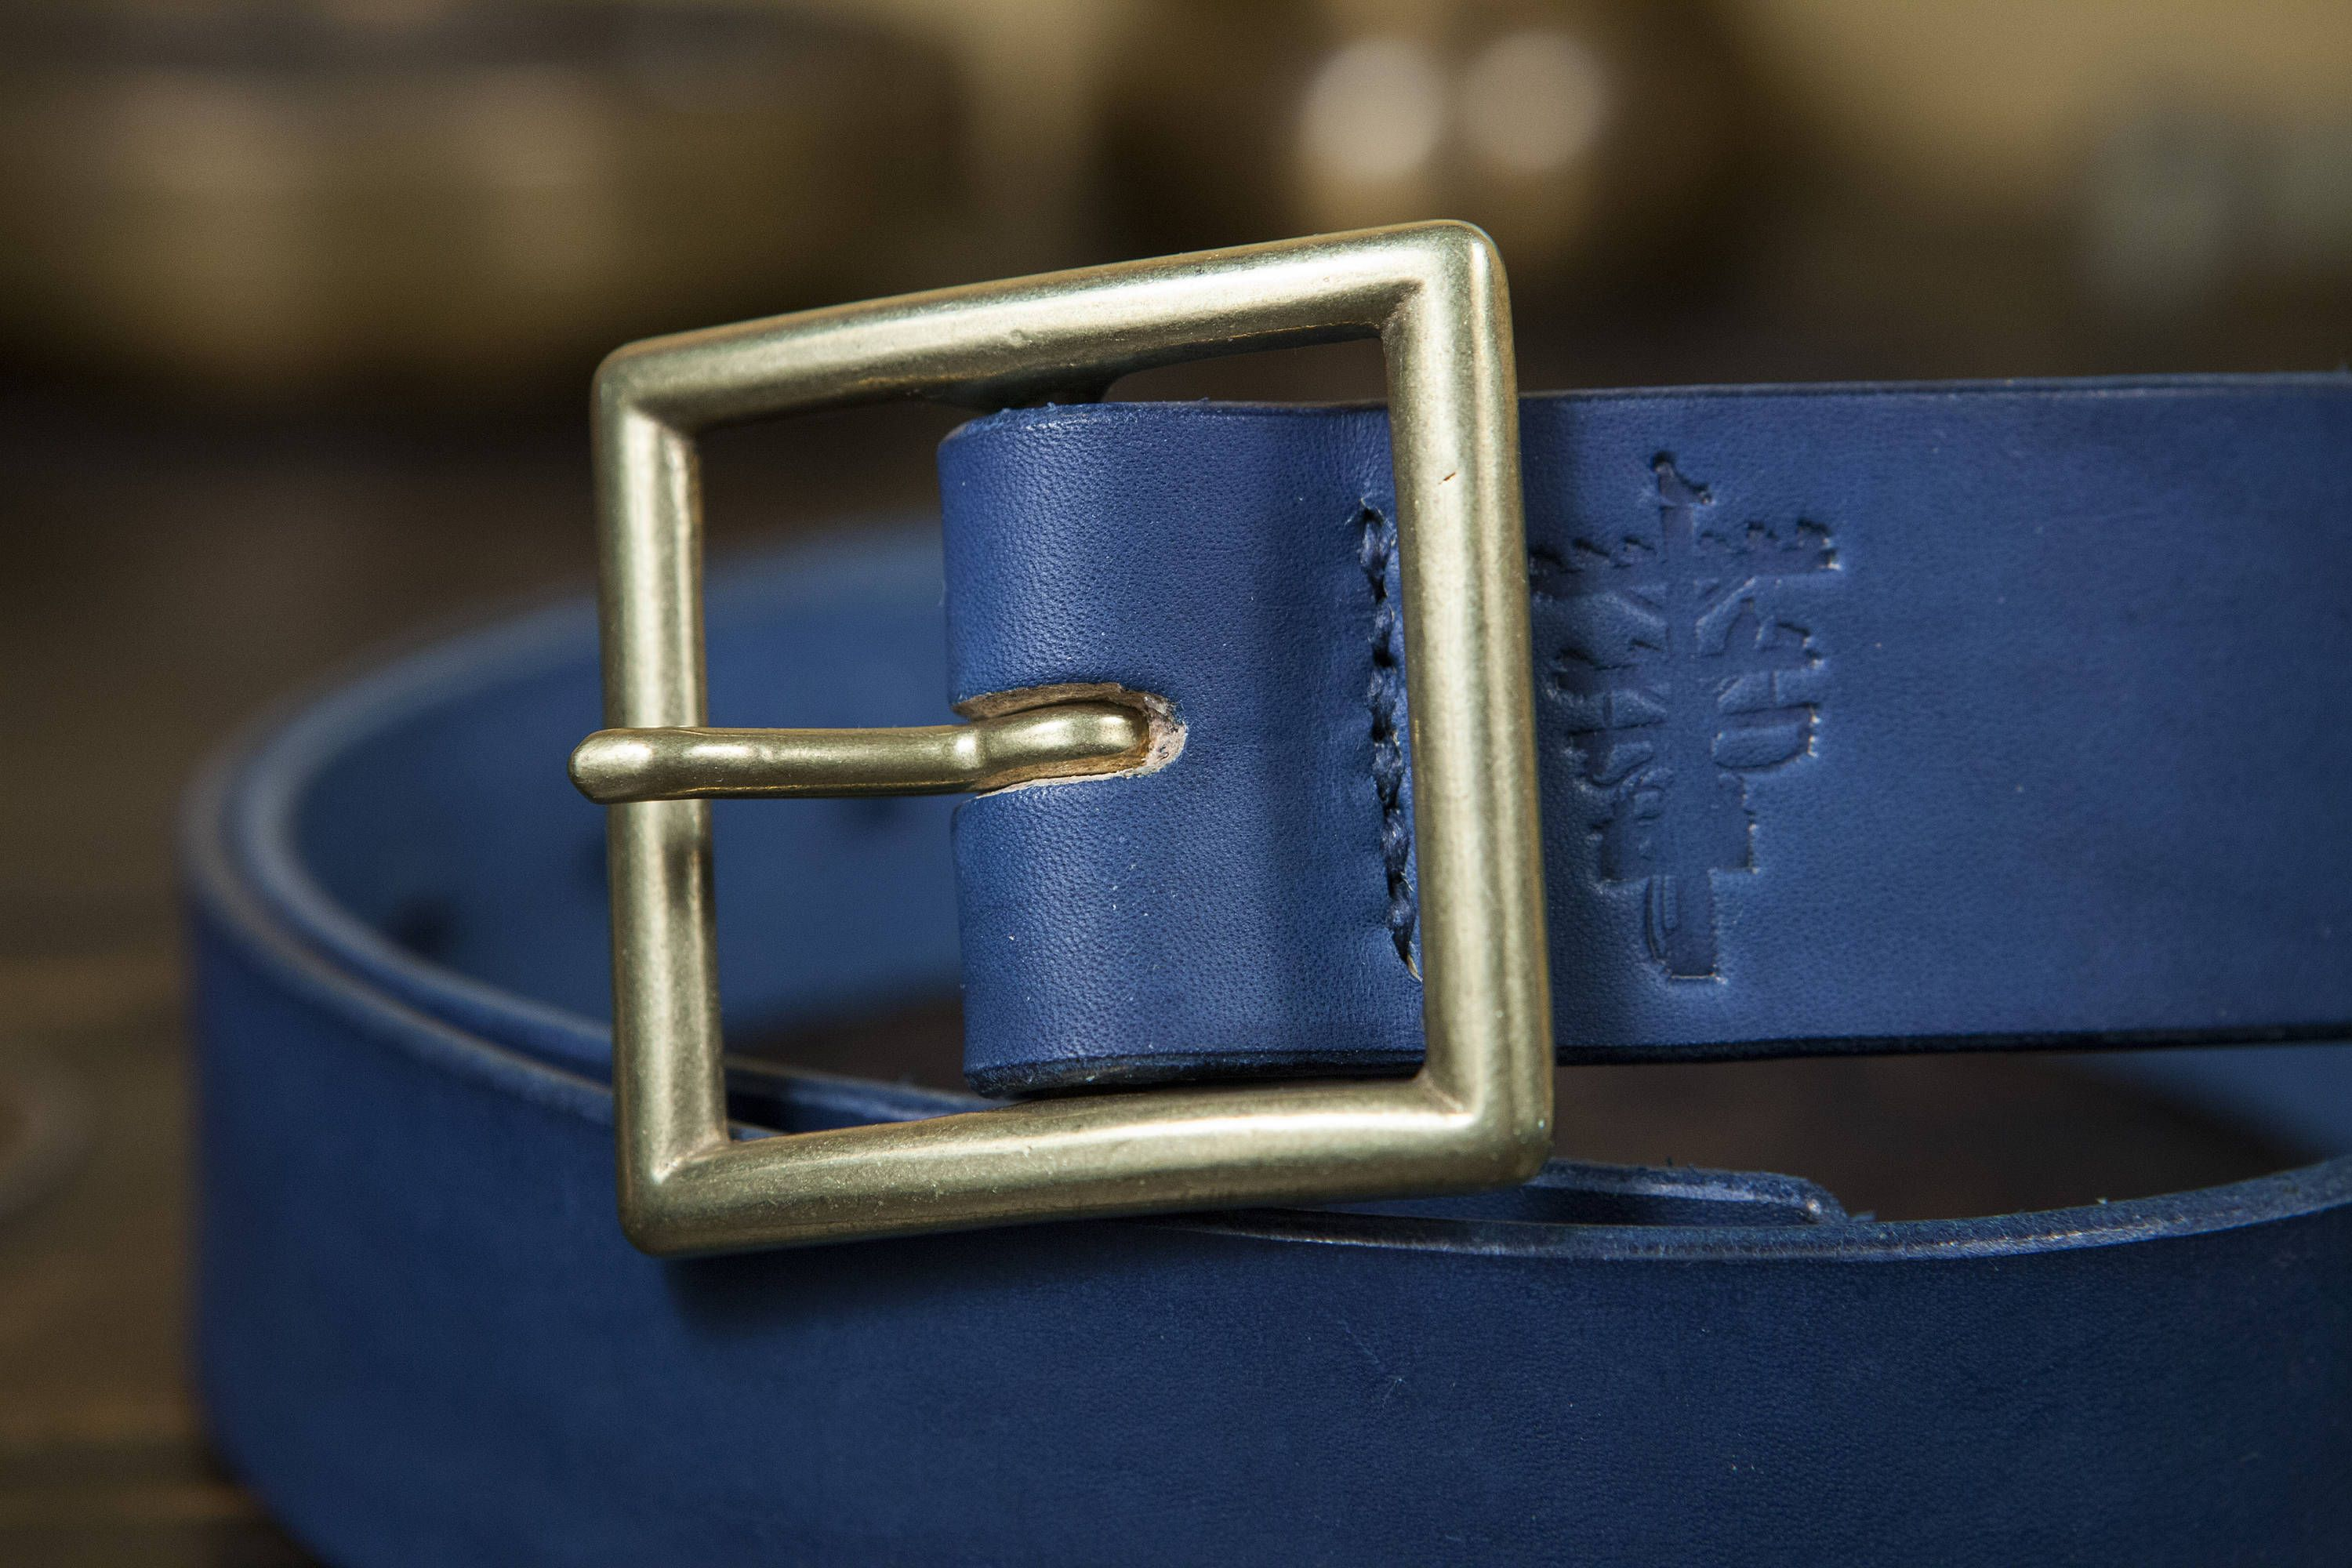 The Garrison Buckle That I Ve Chosen For This Belt While Very Simple In Design Is Made In Japan Of The Highest Qua Natural Indigo Dye Indigo Dye Brass Buckle